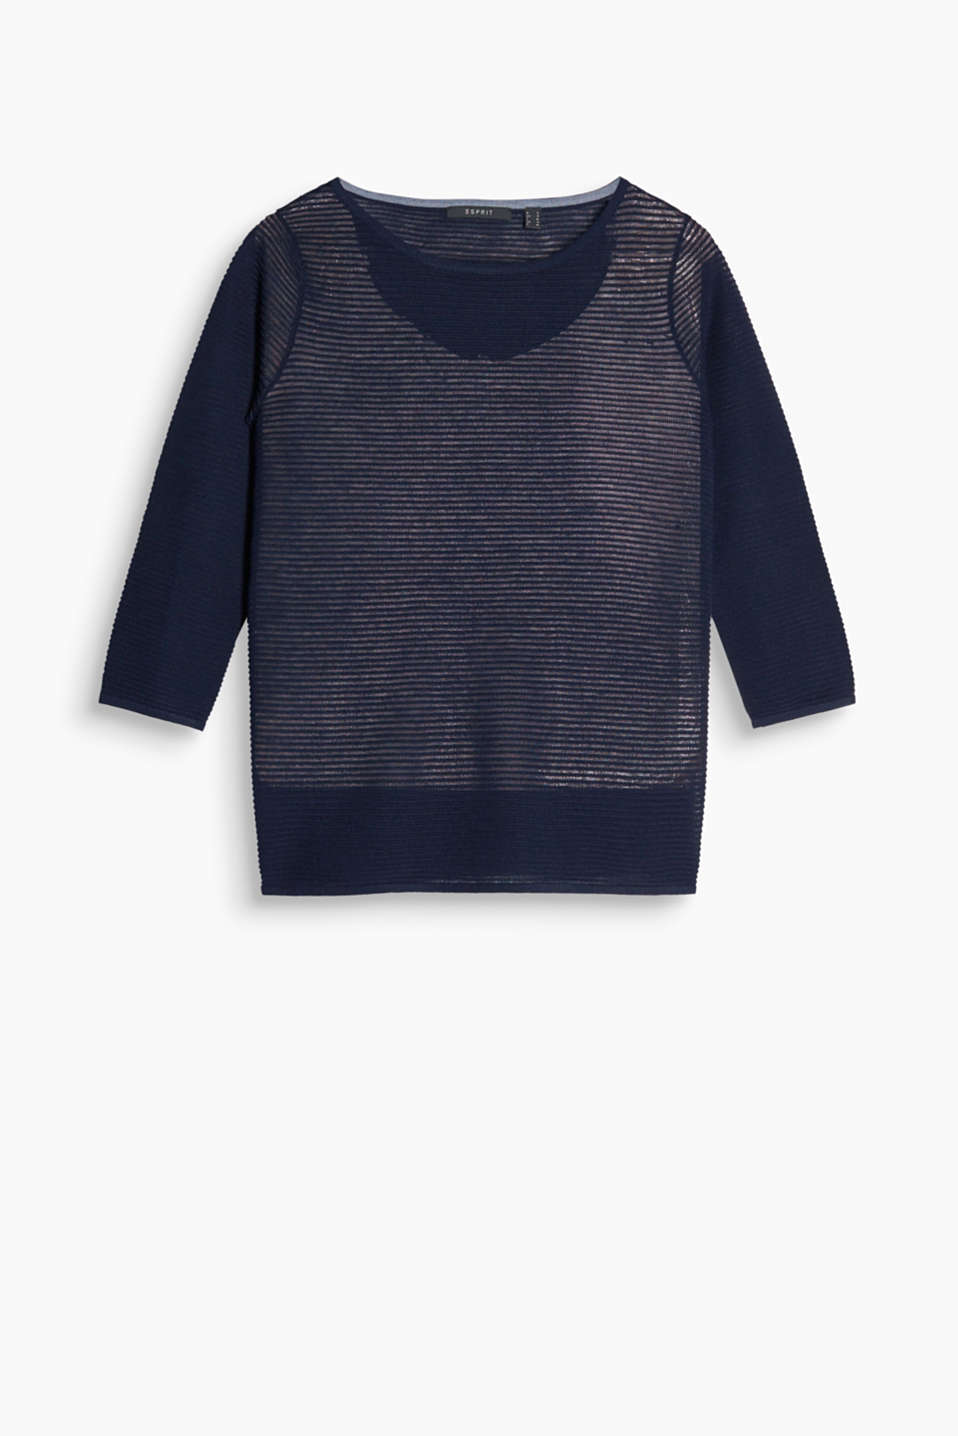 Semi-sheer ribbed jumper with a boxy cut and fashionable three-quarter length sleeves